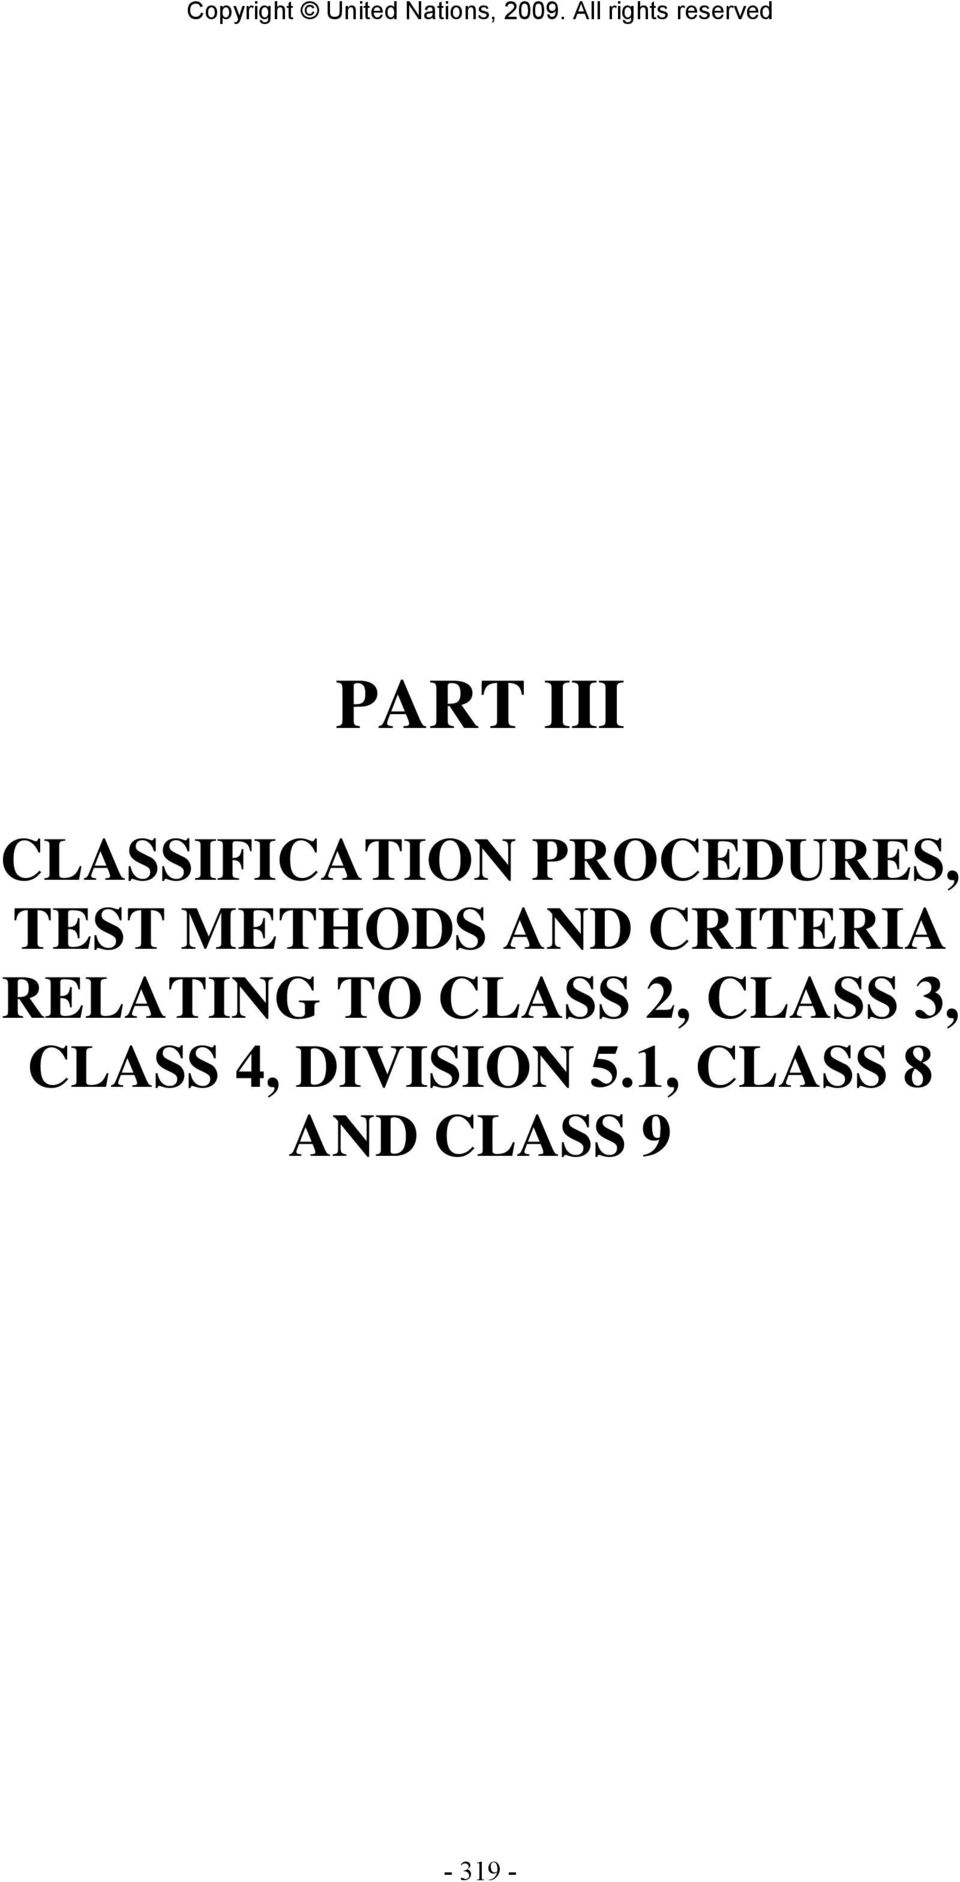 CRITERIA RELATING TO CLASS 2,